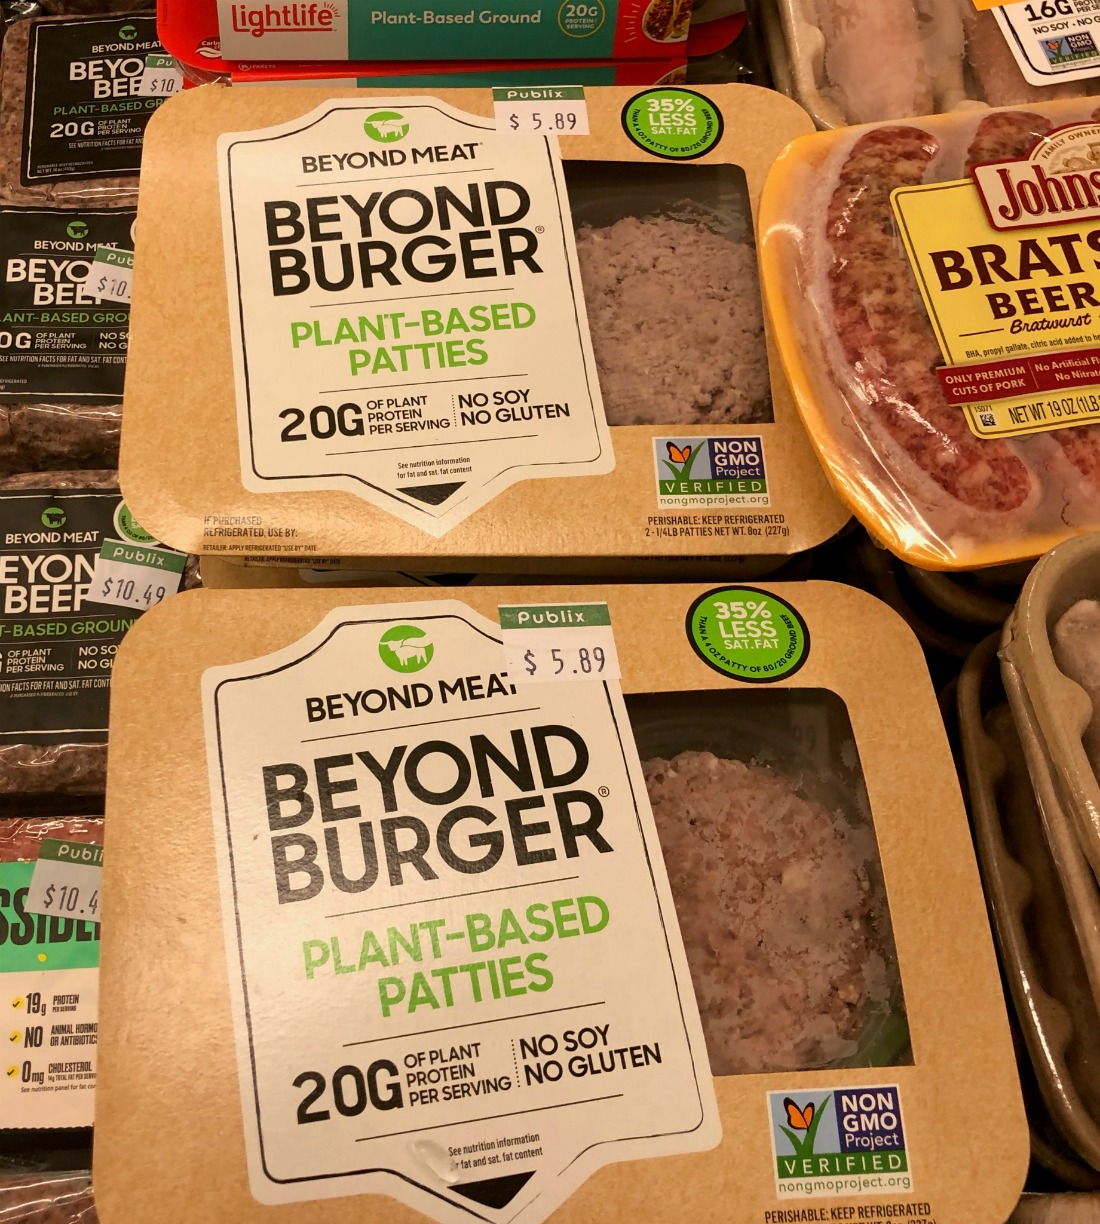 Beyond Meat The Beyond Burger Just $2.74 At Publix ...